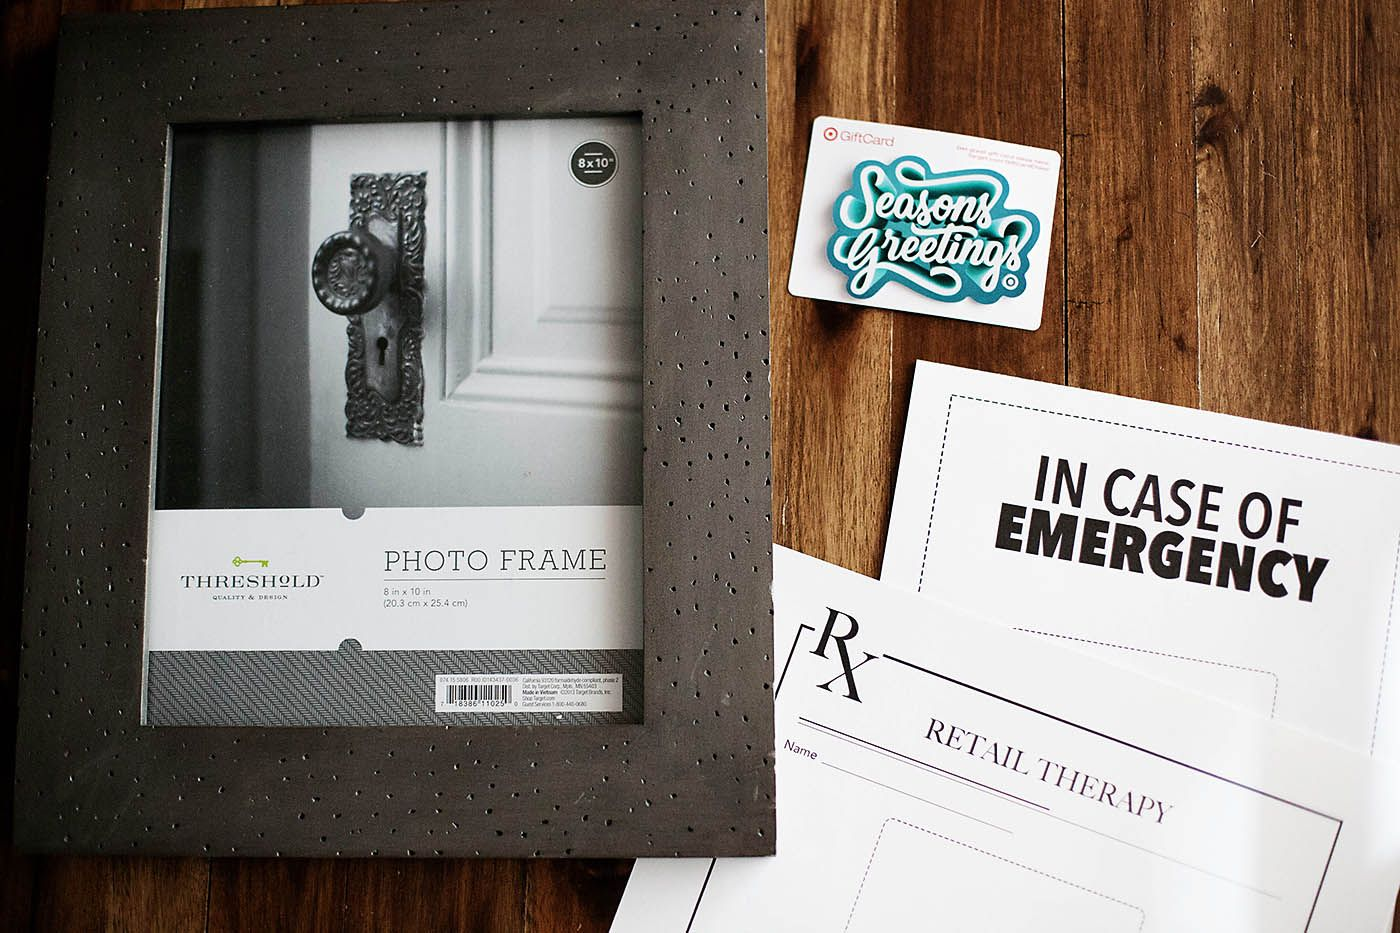 Wondering how to wrap a gift card in a way they'll never forget? This idea from Blogger All for the Memories is a-m-a-z-i-n-g! Print these awesome certificates and attach your Target GiftCard. Place it in a picture frame for a gift sure to steal the show.